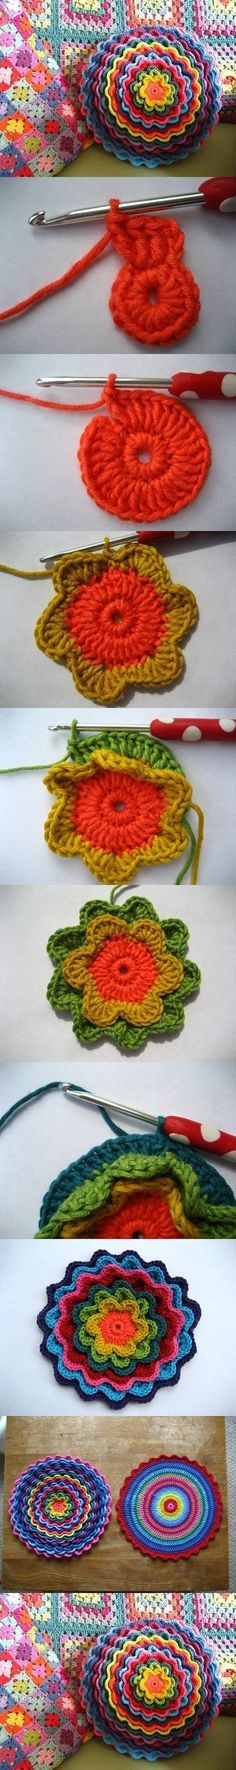 DIY Crochet Flower Pattern